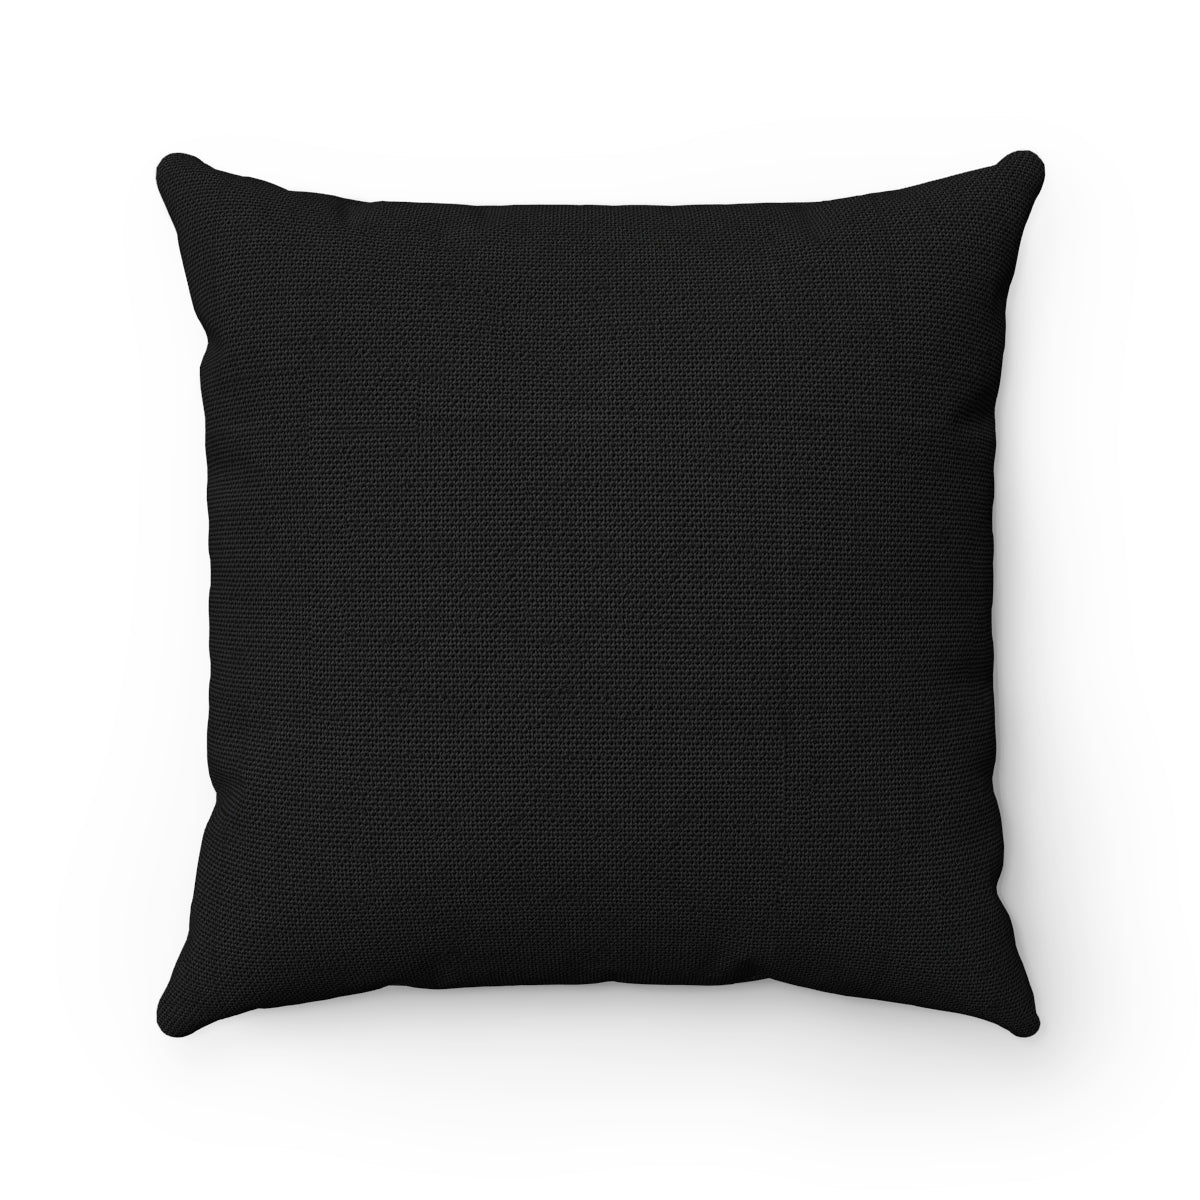 Auditorium Pillow - GoGannon Designs